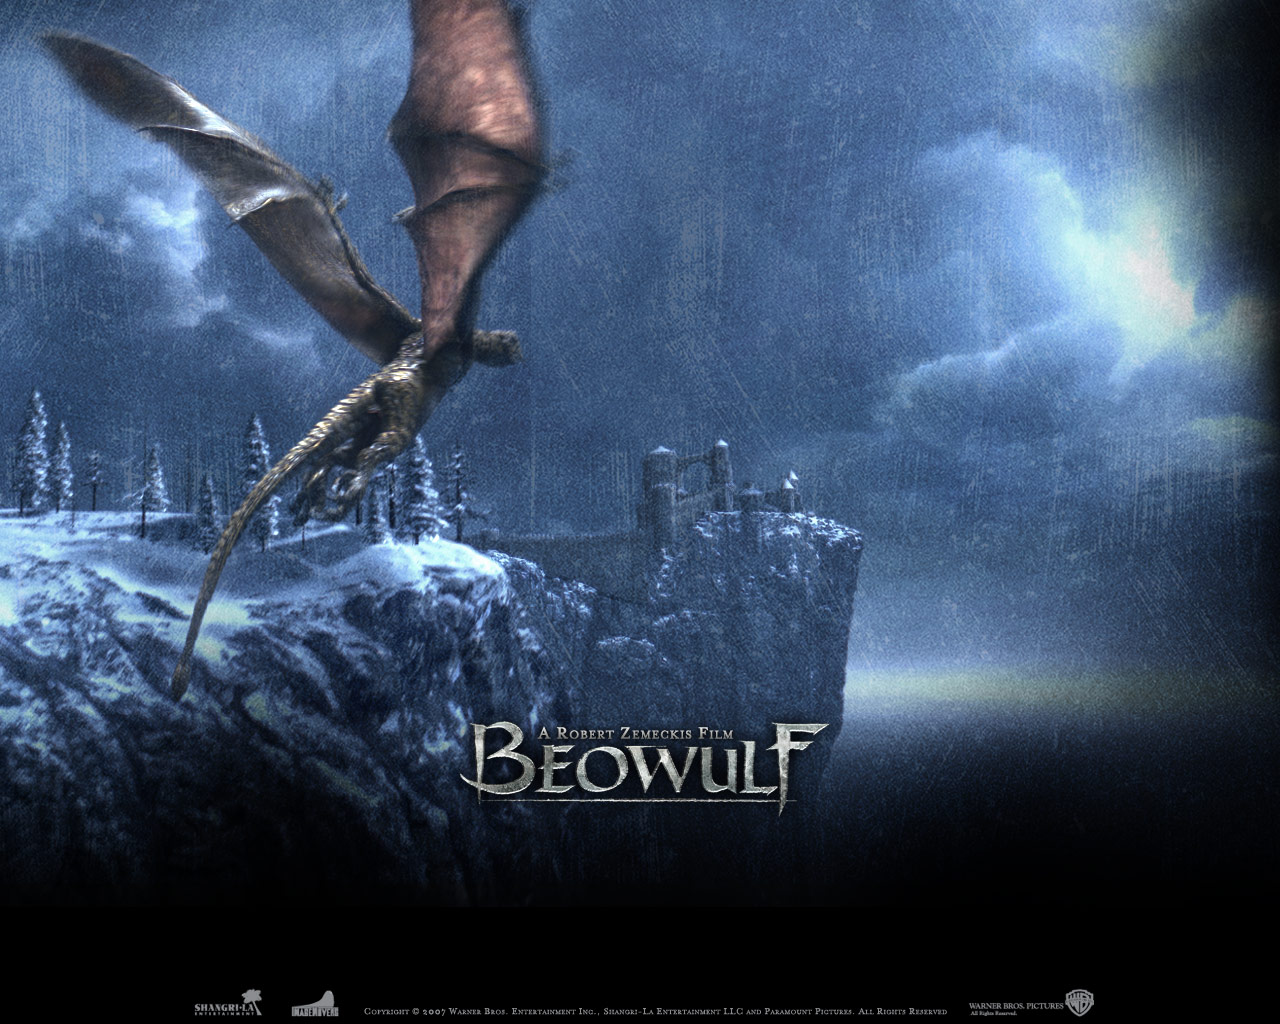 a literary analysis of the epic poem beowulf written by an unknown anglo saxon author Journal 6: anglo-saxon poetry  the anglo-saxon time period the epic poem beowulf is about a brave and  motifs of anglo-saxon literature is .